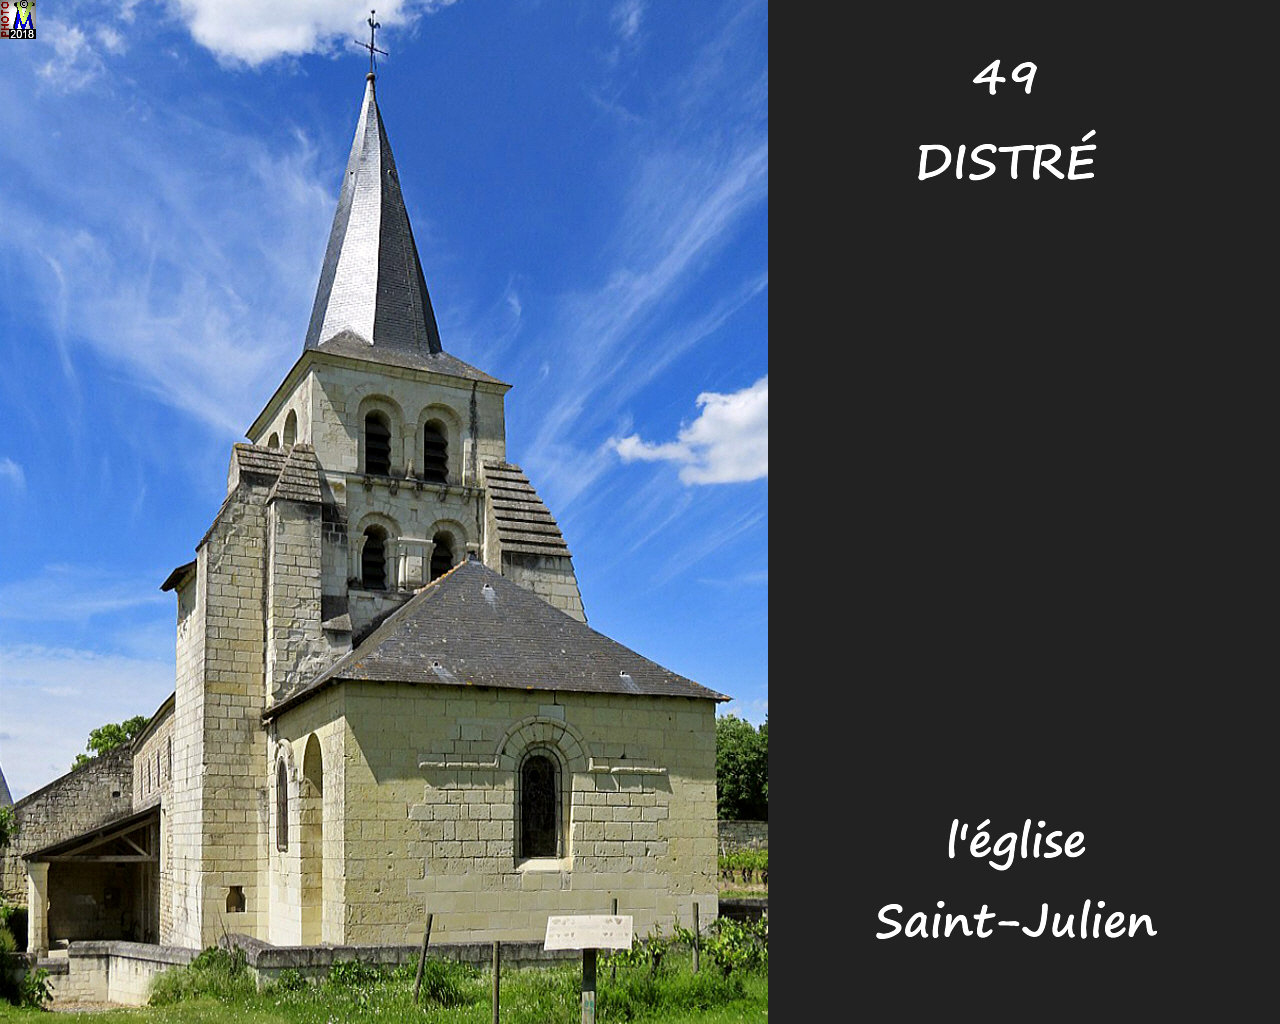 49DISTRE_eglise_1002.jpg